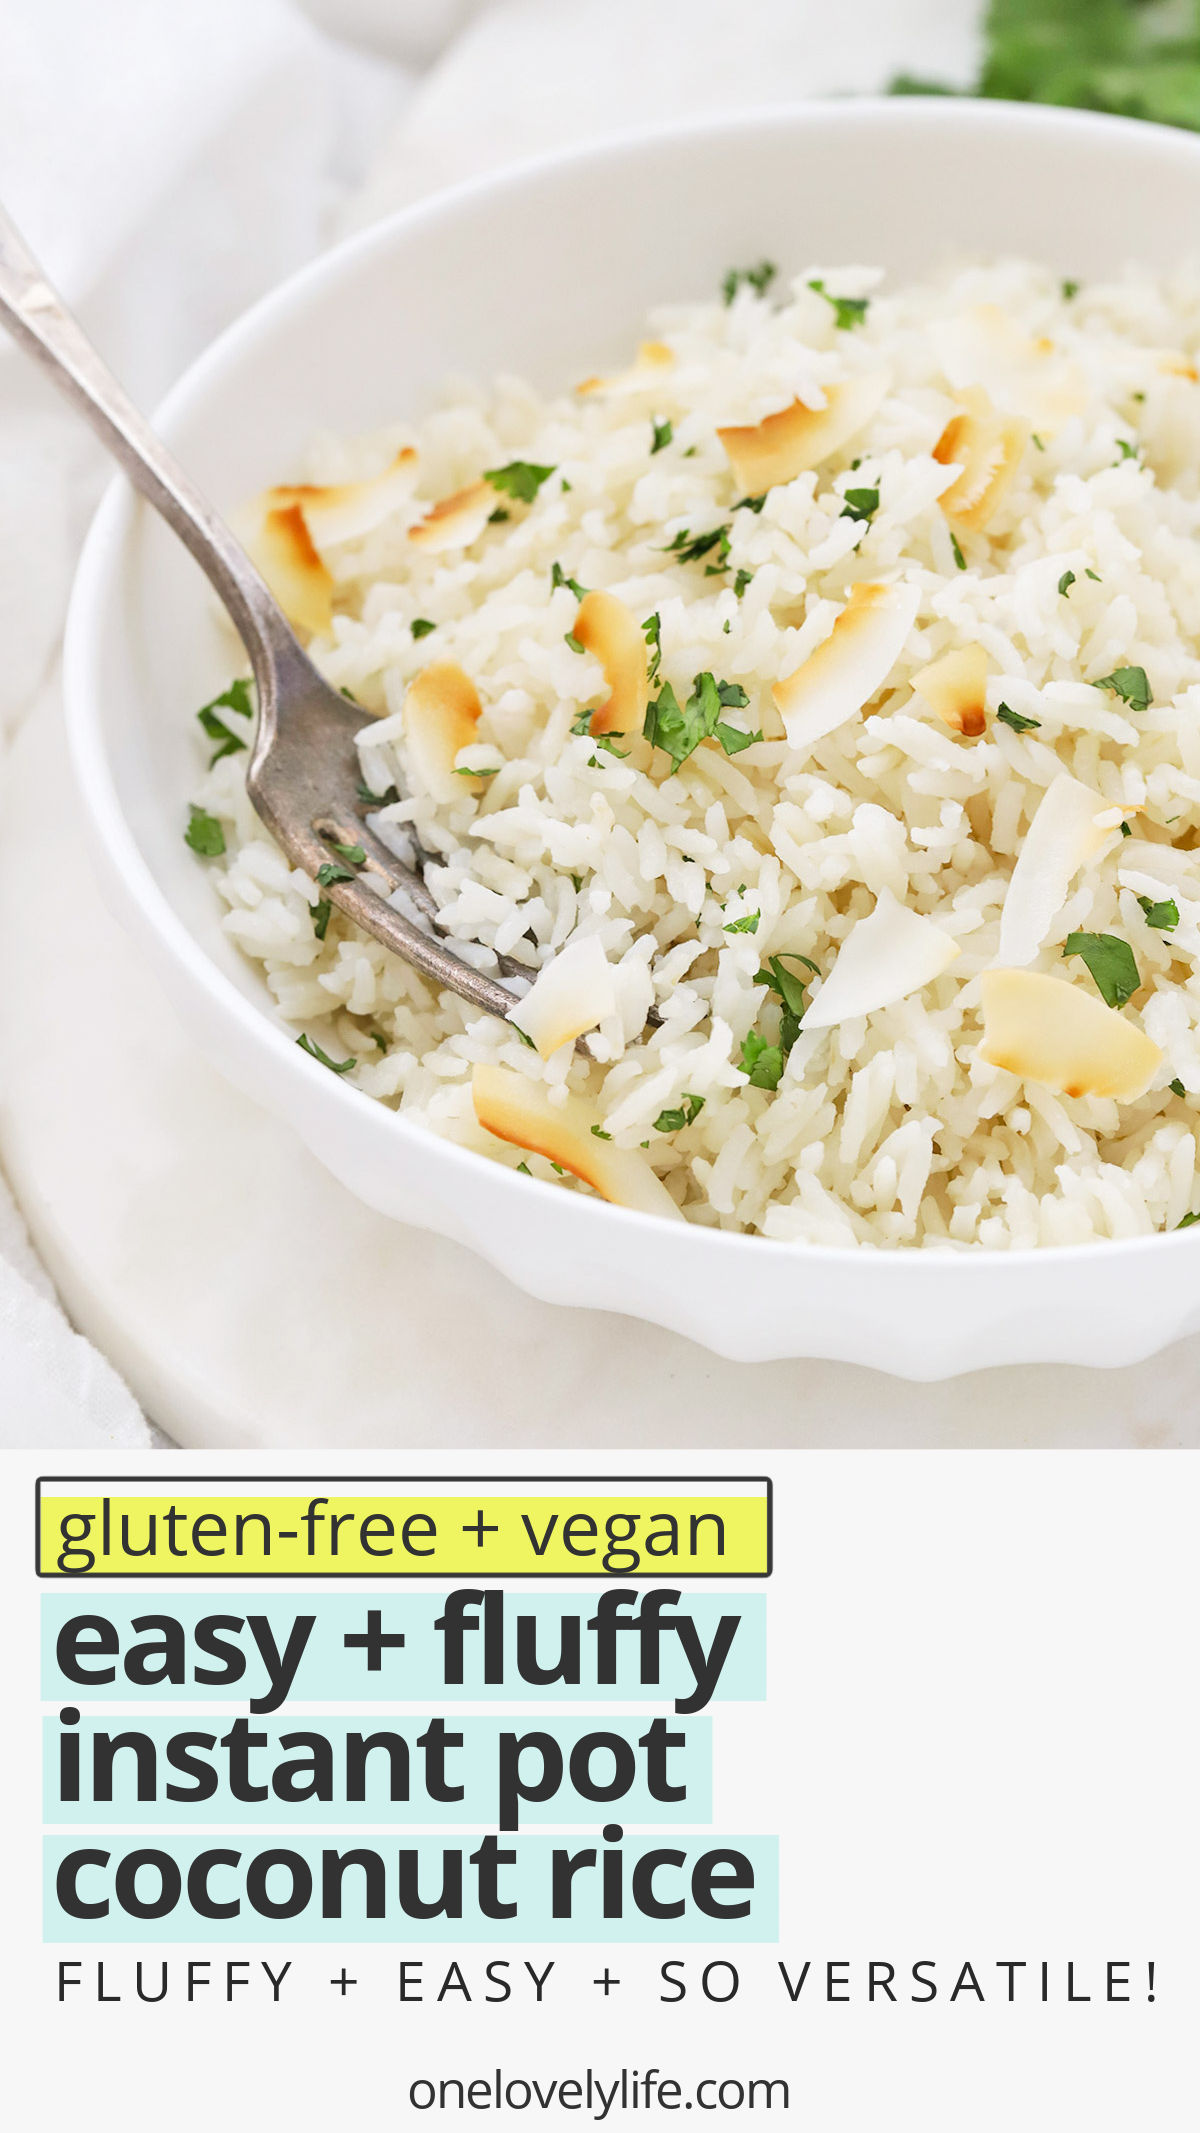 Instant Pot Coconut Rice - This pressure cooker Coconut Rice is SO easy to make and makes a delicious side dish to curries, stir-fries, and all your favorite main dishes. (Vegan, Gluten-Free) // Seasoned Rice // Thai Coconut Rice // Side Dish Recipe // Easy Coconut Rice Recipe #rice #glutenfree #instantpot #pressurecooker #curry